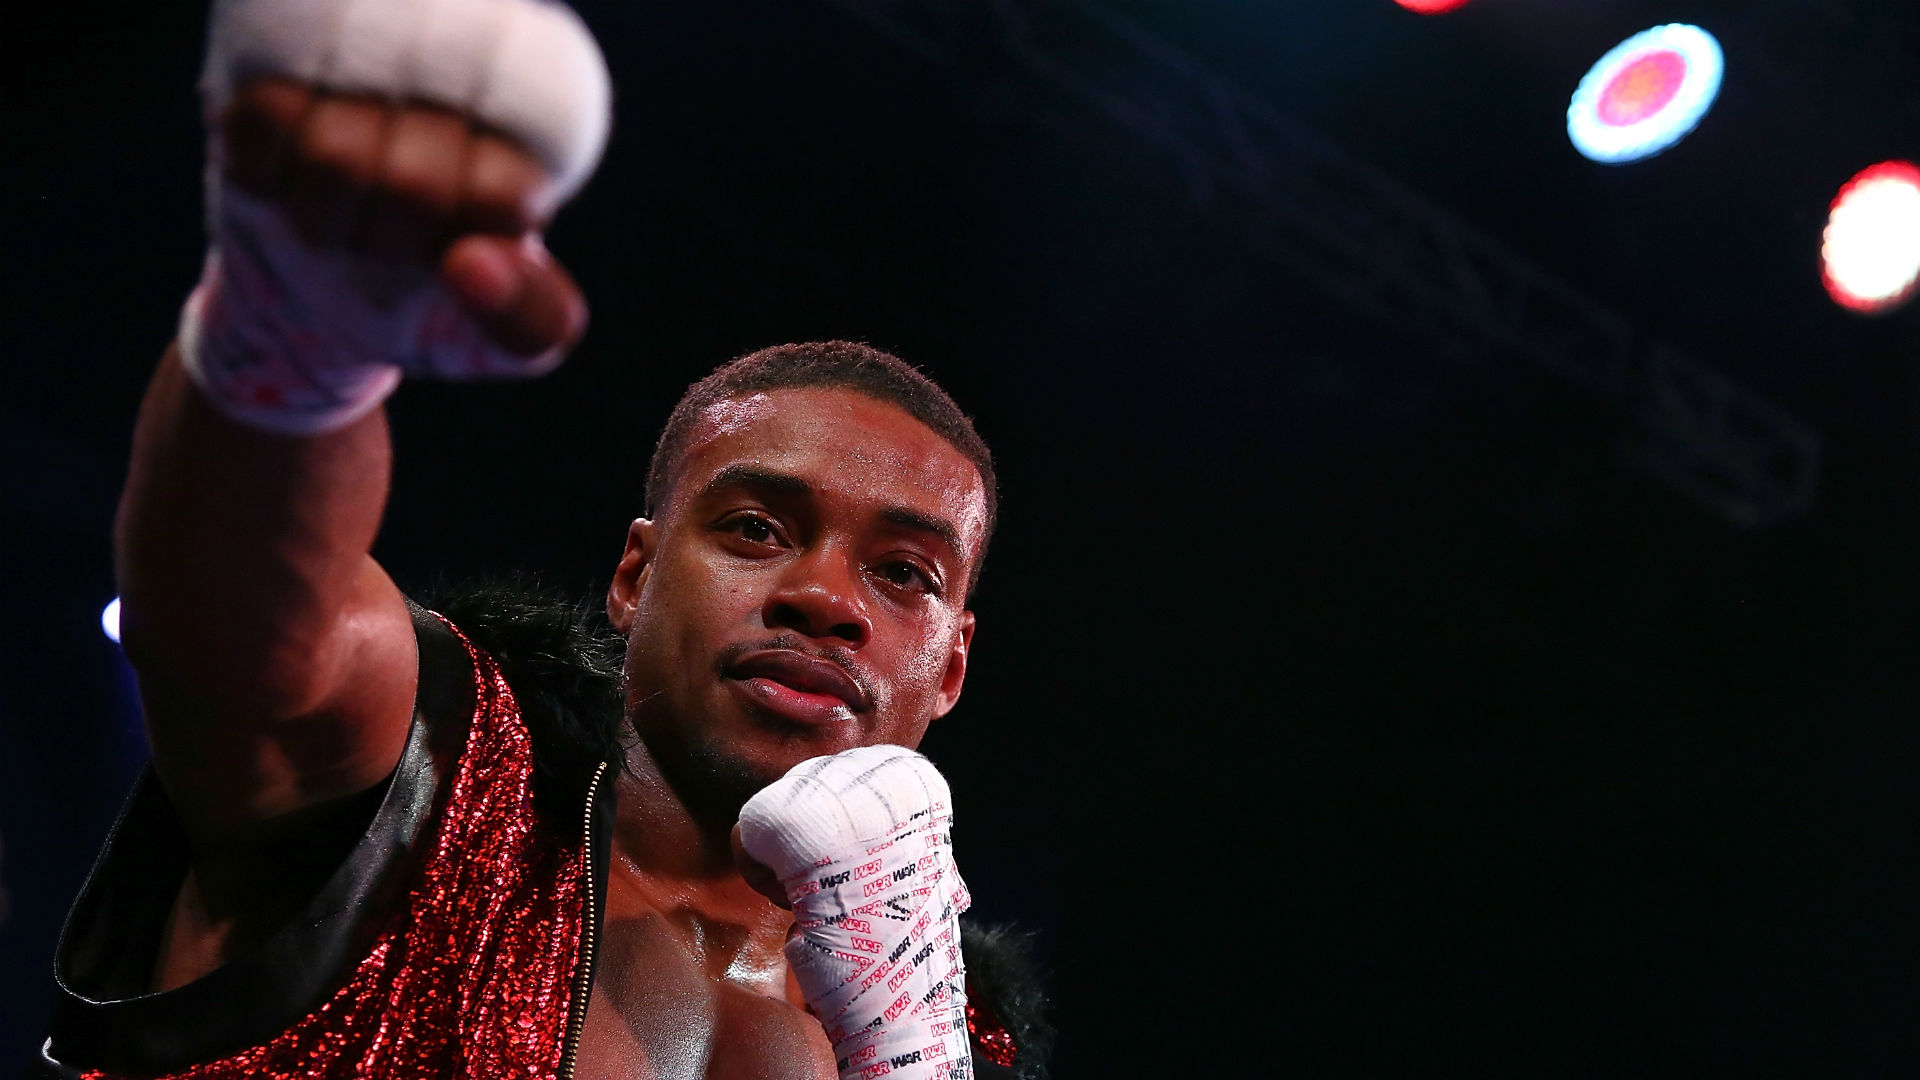 Errol Spence Jr.: The growing legend of boxing's disturbingly calm boogeyman